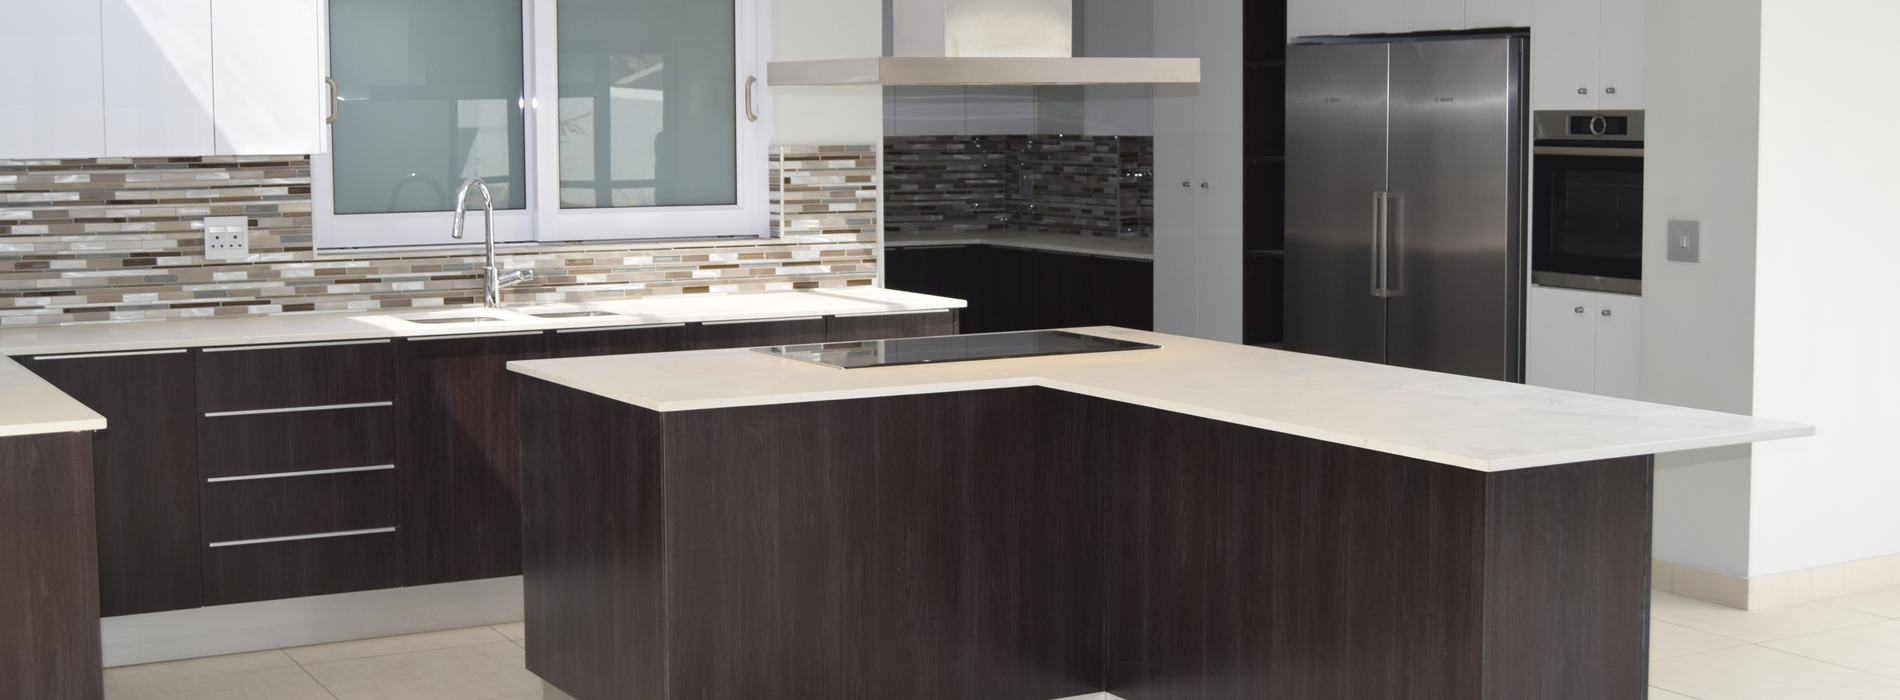 New Kitchen Design Trends 2019 What S